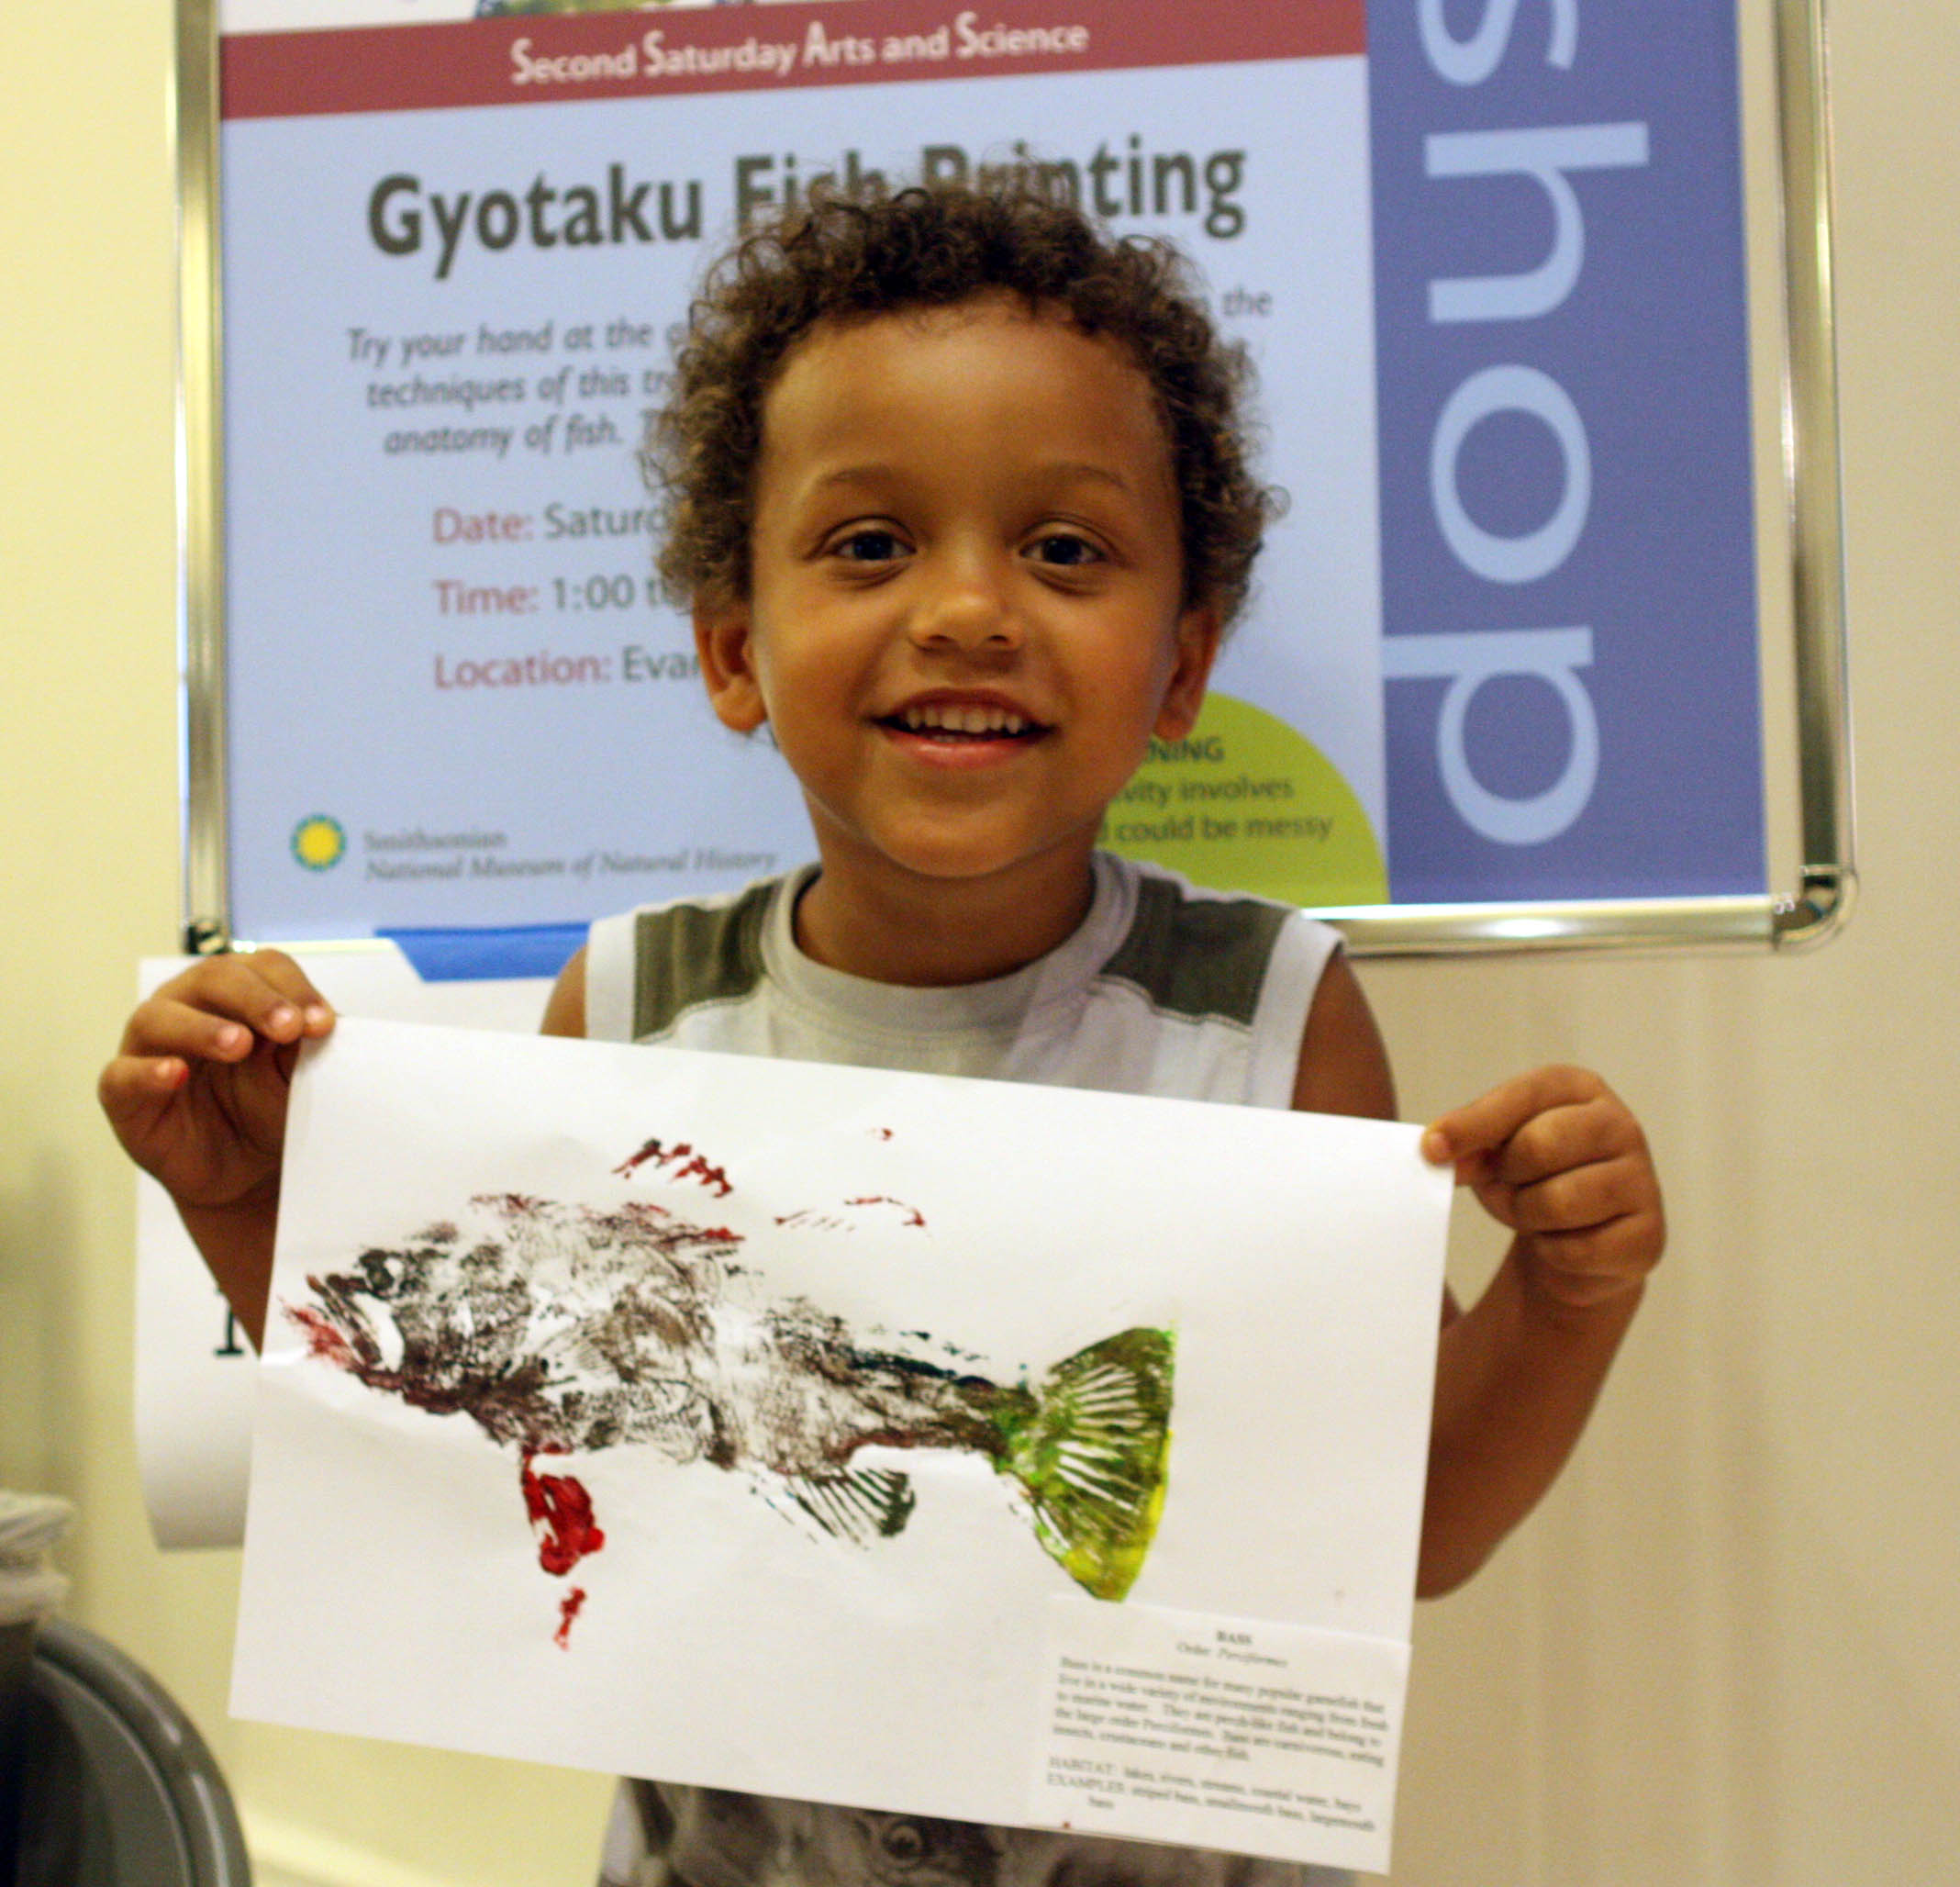 A young visitor holds up his painted fish Gyotaku fish print at the Smithsonian's National Museum of Natural History<div class='credit'><strong>Credit:</strong> A young visitor holds up his painted fish Gyotaku fish print at the Smithsonian's National Museum of Natural History</div>